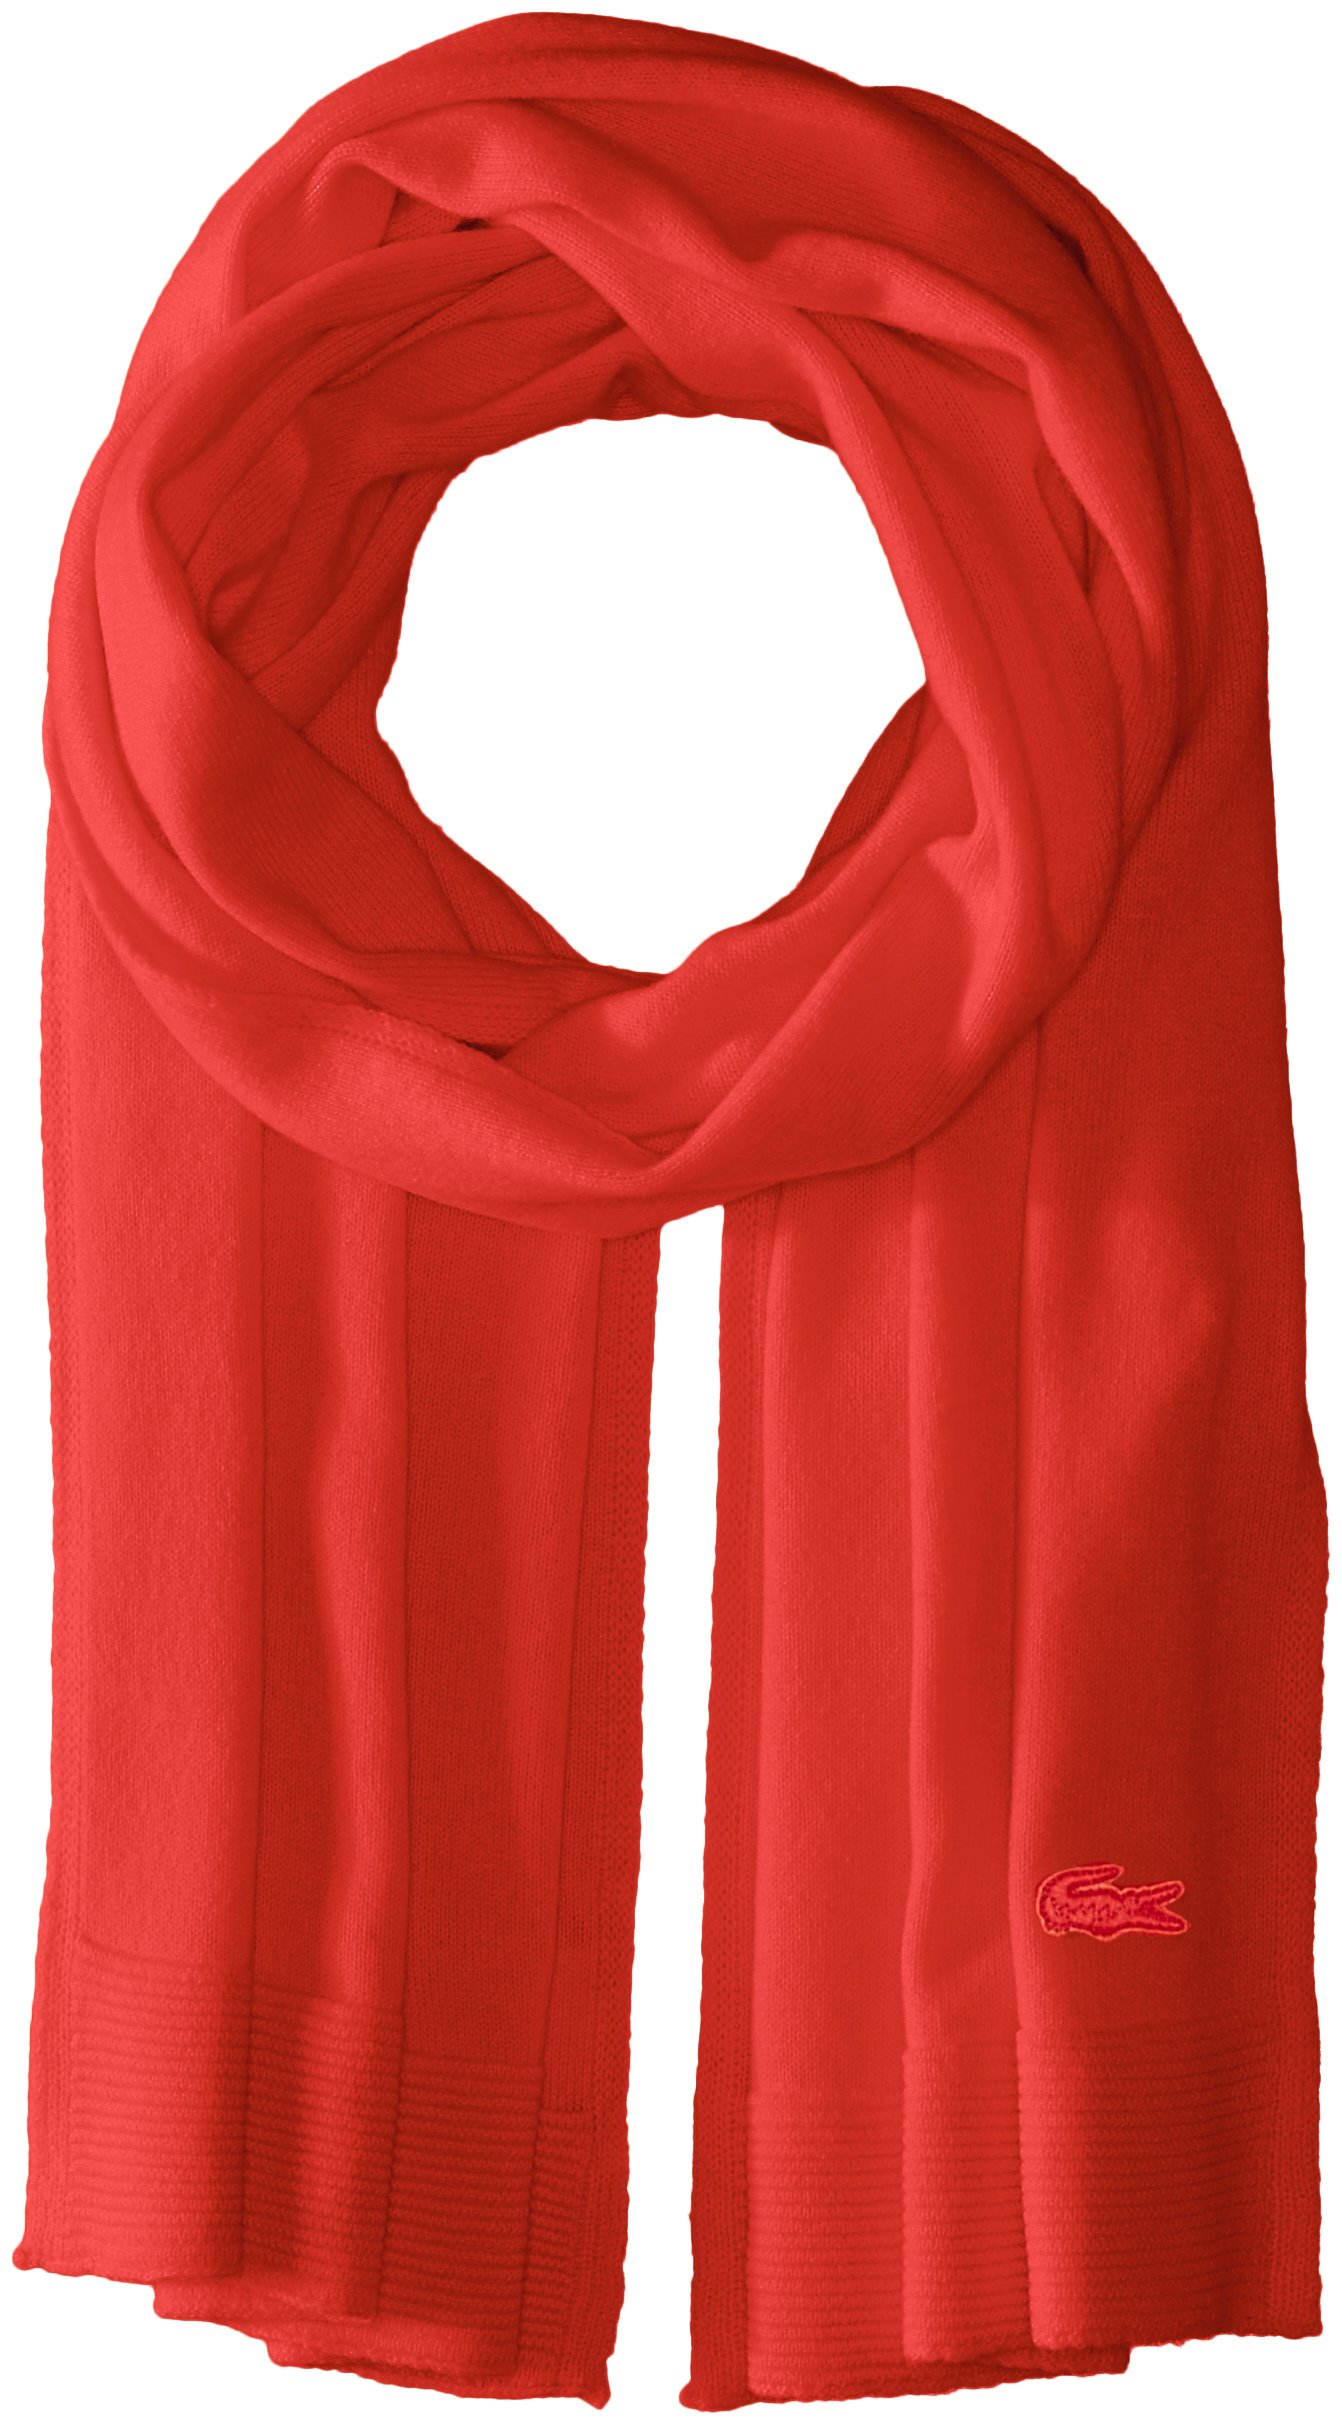 Lacoste Women's solid Fine Jersey Cashmere Scarf, Regal Red, One Size